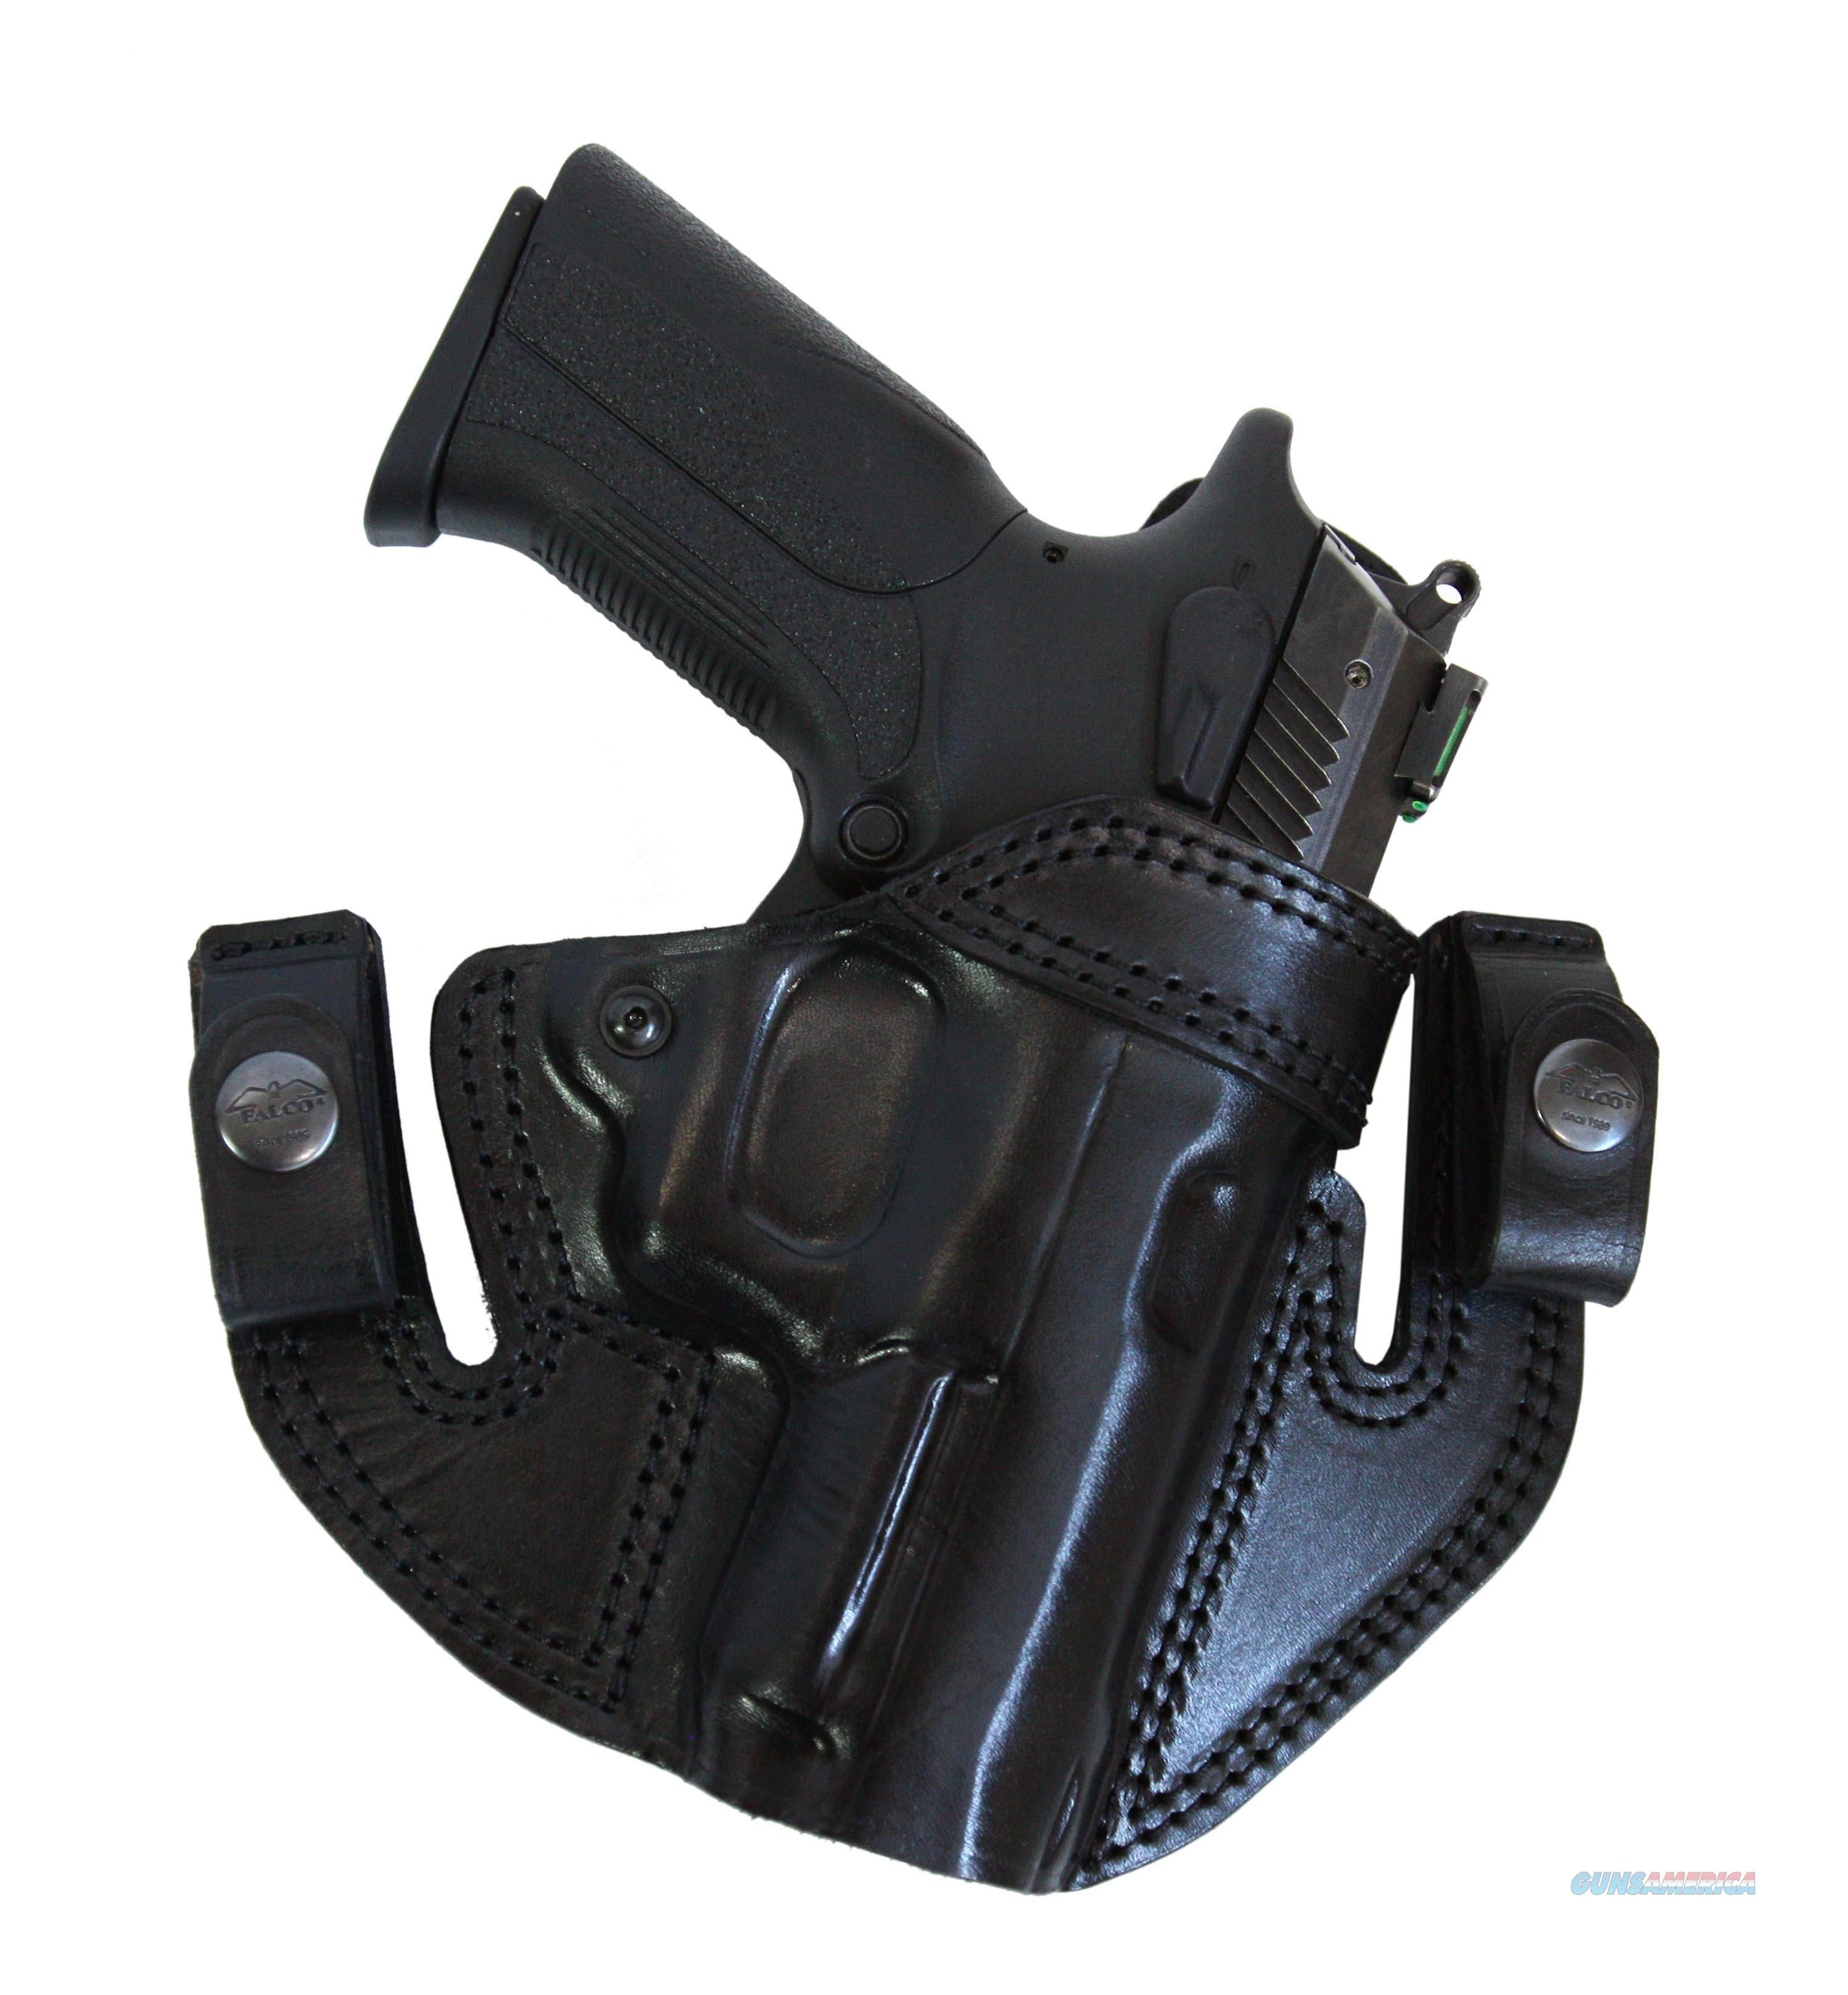 IWB / OWB Leather Gun Holster  Smith & Wesson MP9  Non-Guns > Holsters and Gunleather > Concealed Carry